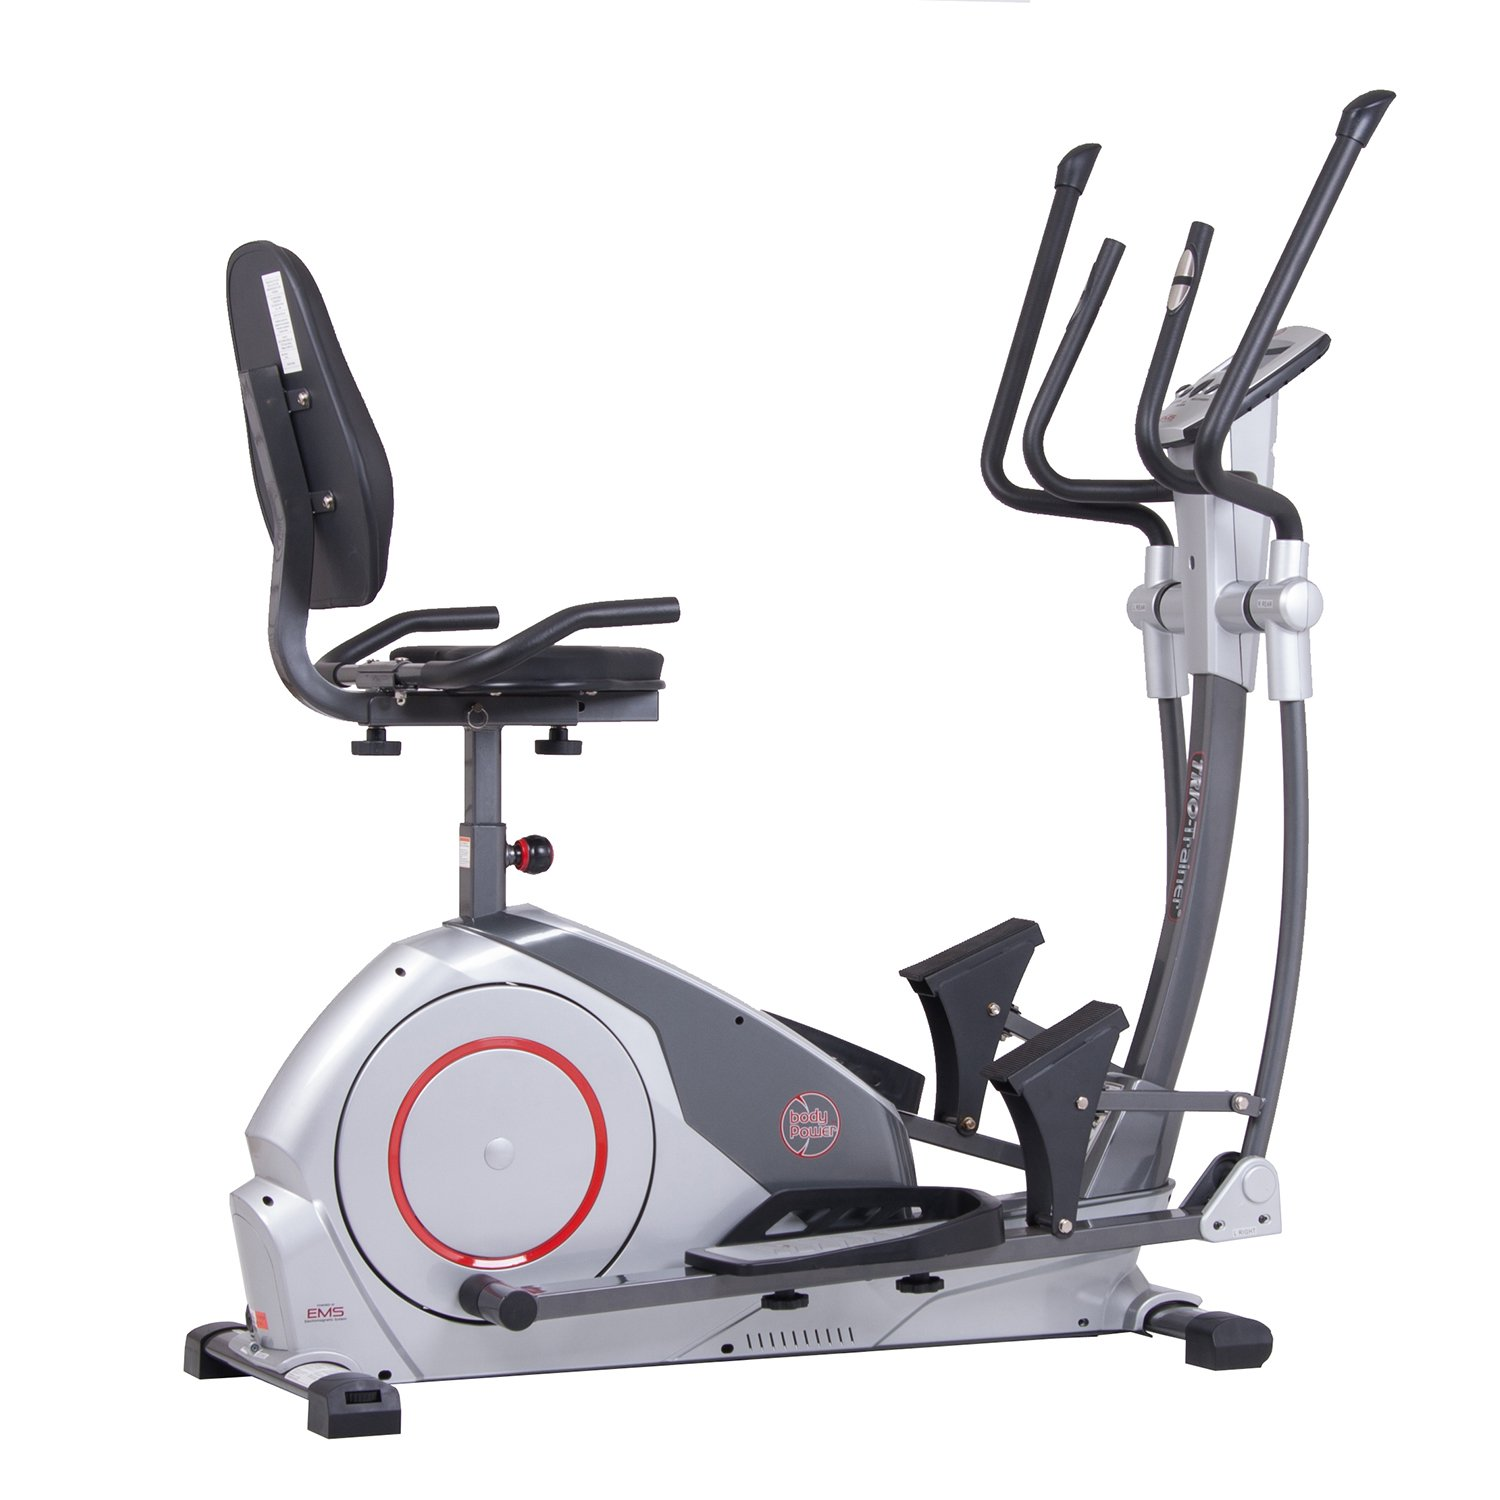 Body Power Deluxe 3-in-1 Trio Trainer Elliptical, Upright Stationary, and Recumbent Exercise Bike ALL IN ONE / with Eddy Current EMS Resistance Braking System Quality Cardio Workout Machine